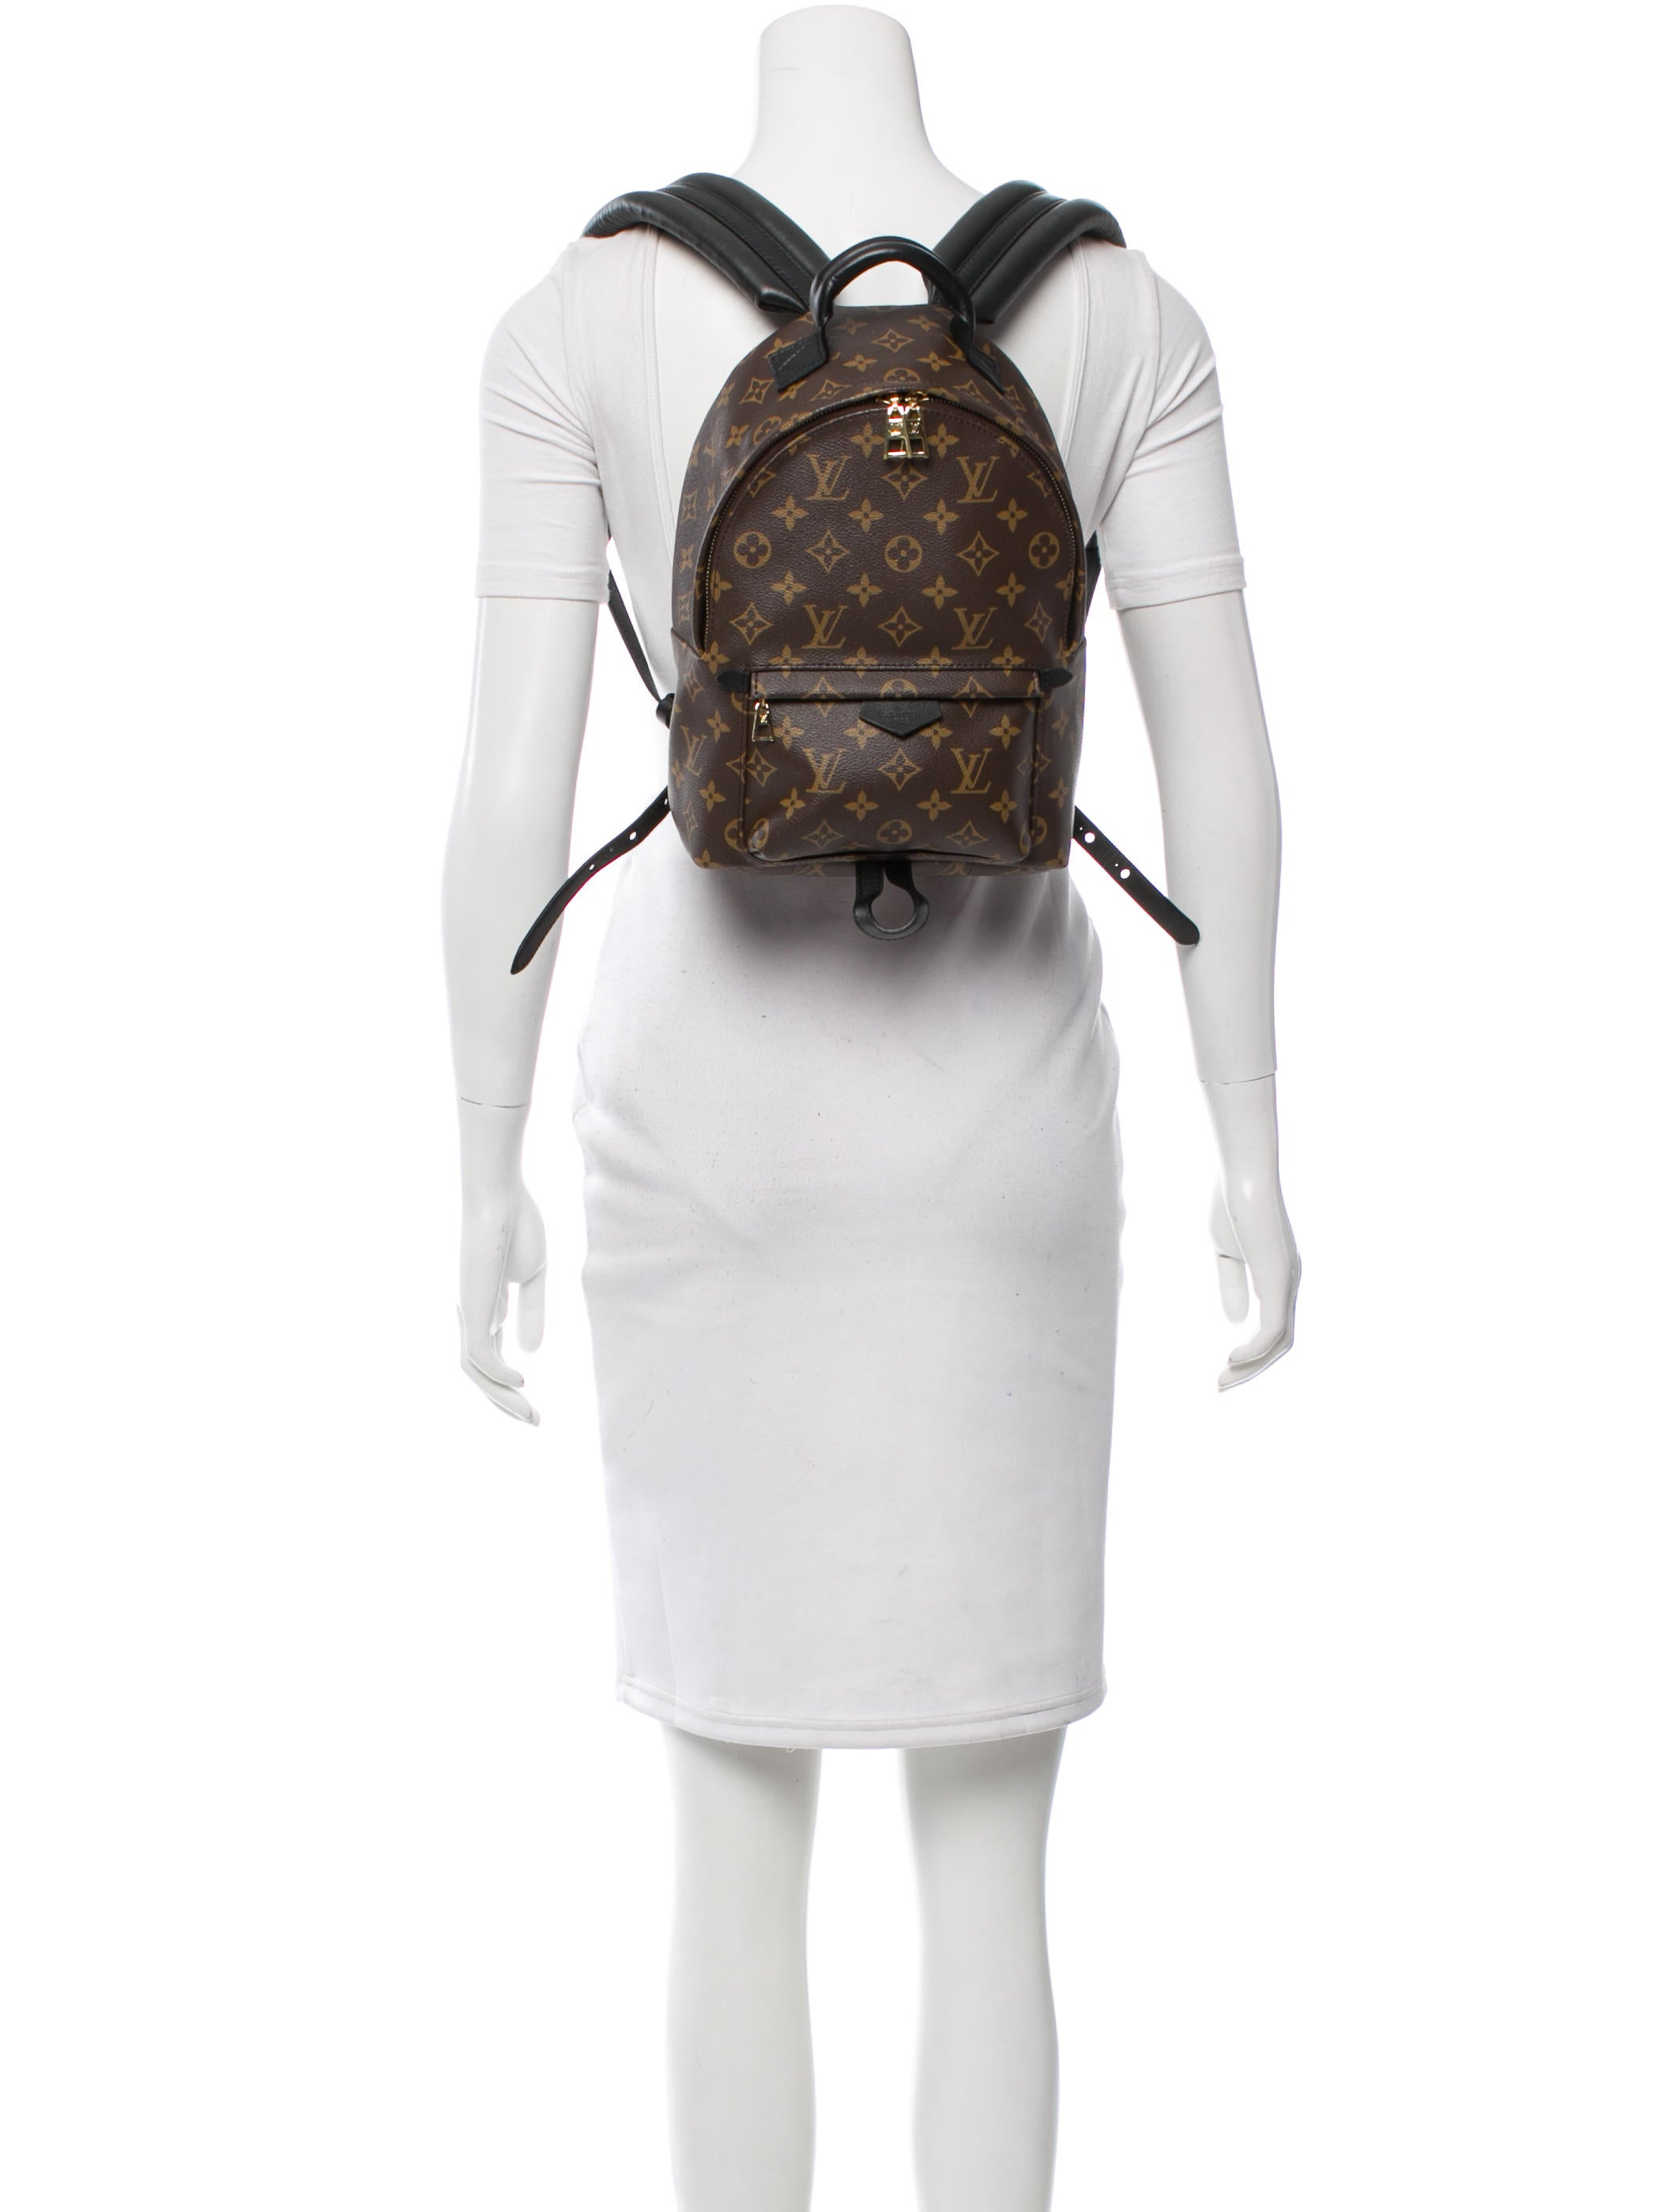 Louis Vuitton 2016 Palm Springs Backpack Pm Handbags